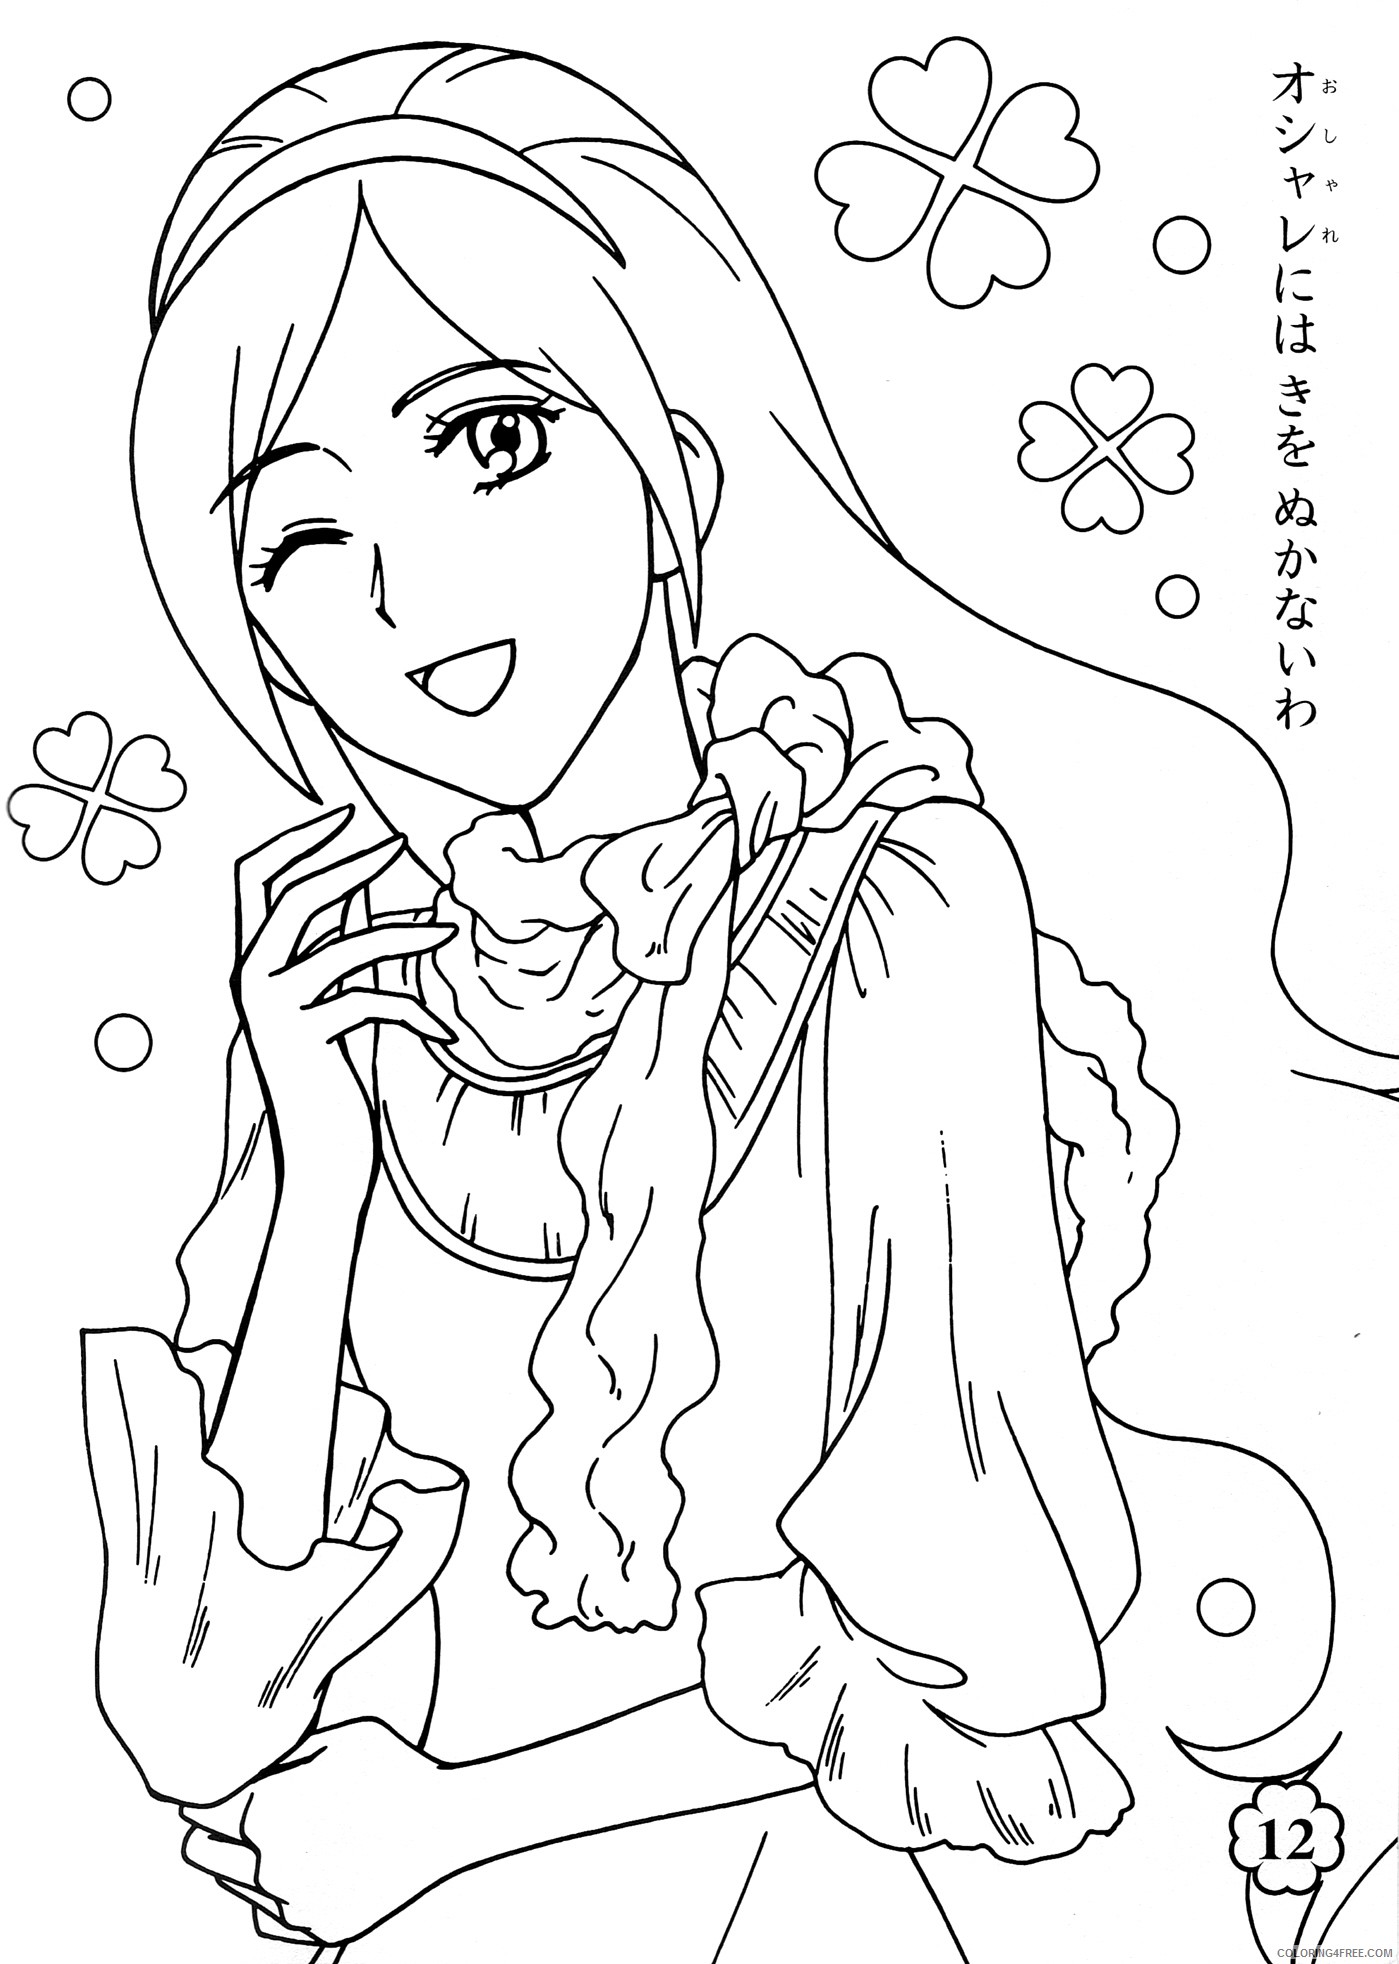 pretty coloring pages anime girl Coloring4free